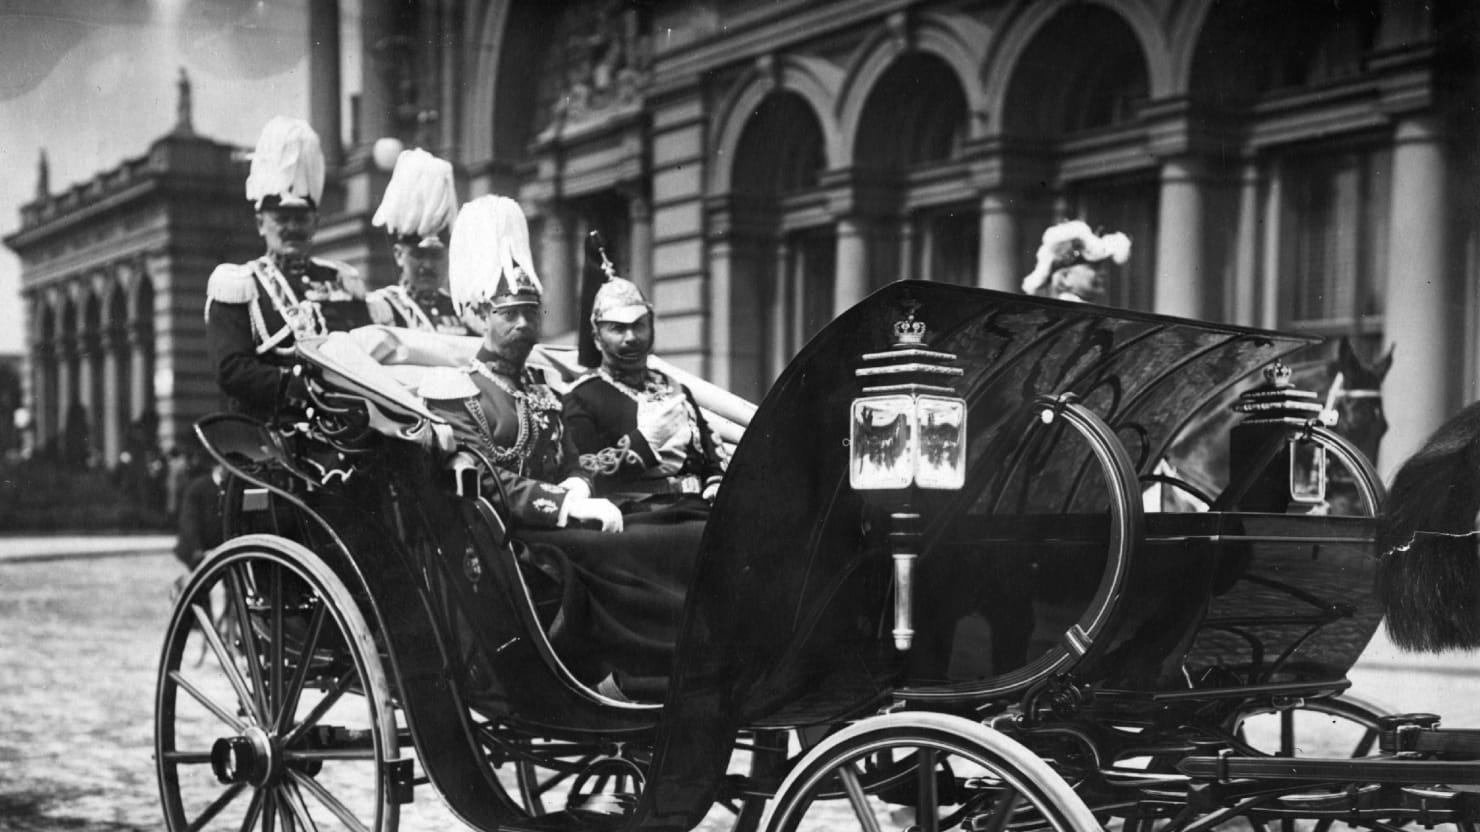 Before the Fall: What Did the World Look Like in 1913?